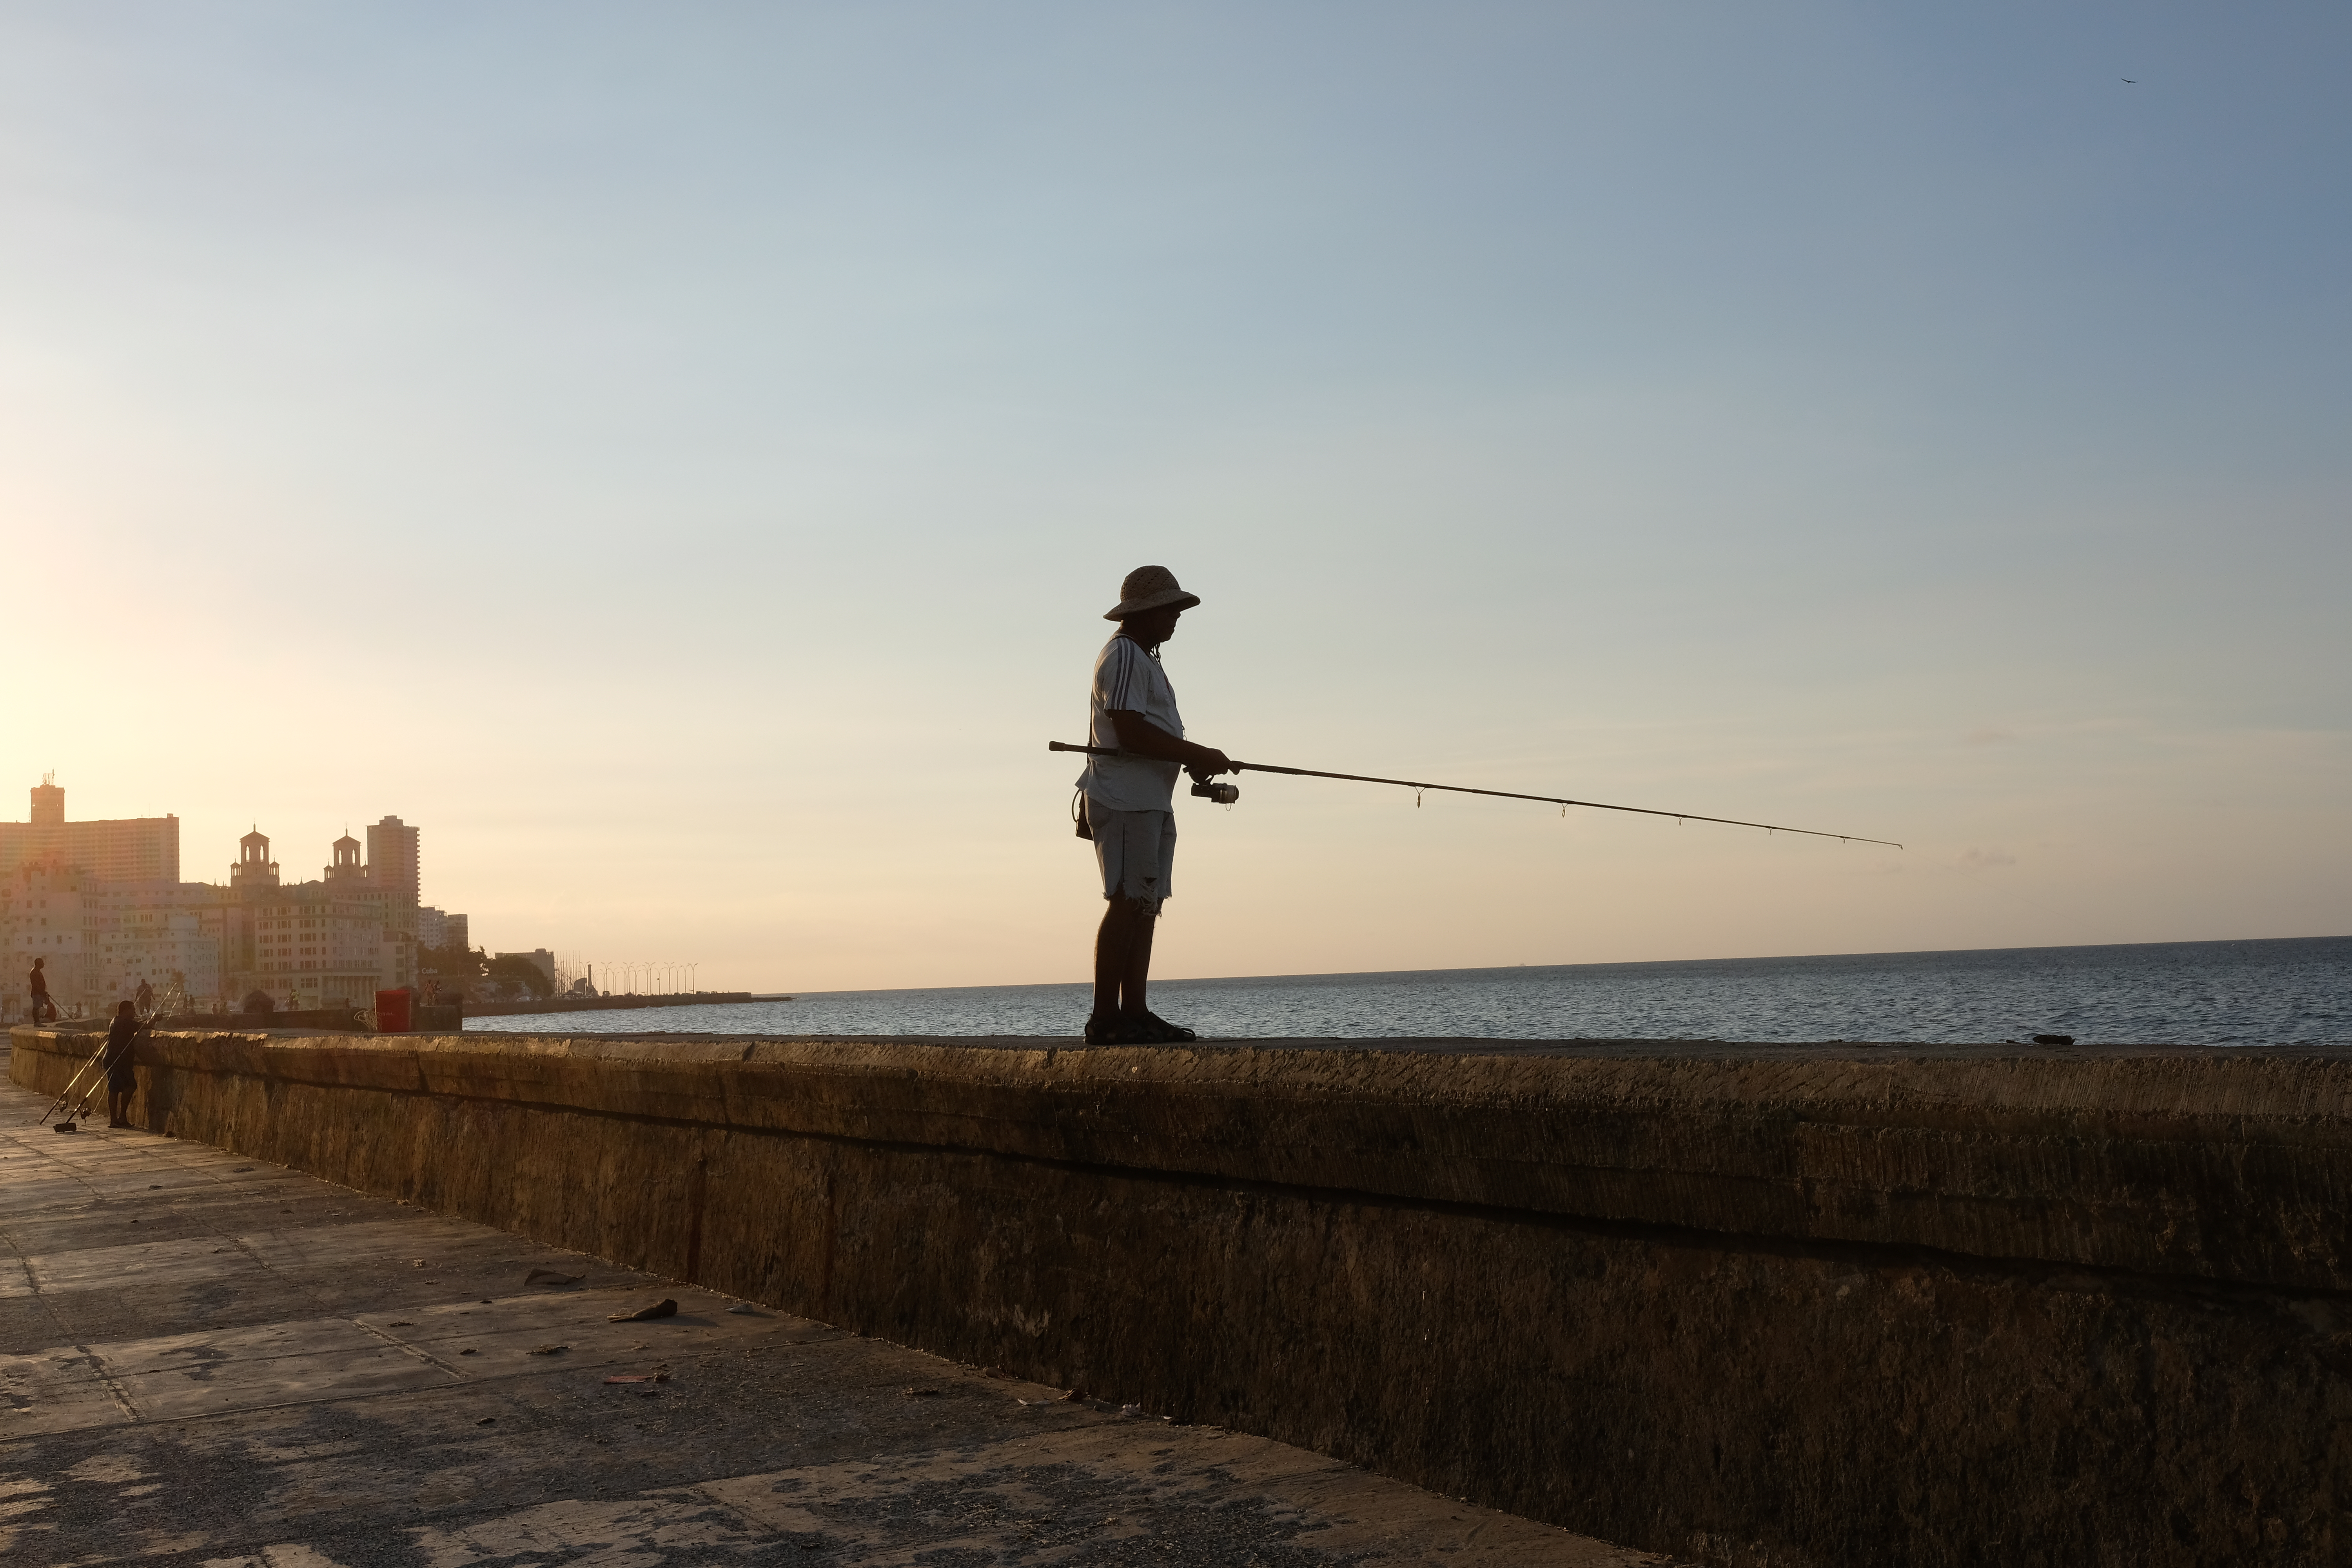 A man fishes from the wall of the Malacon, Havana